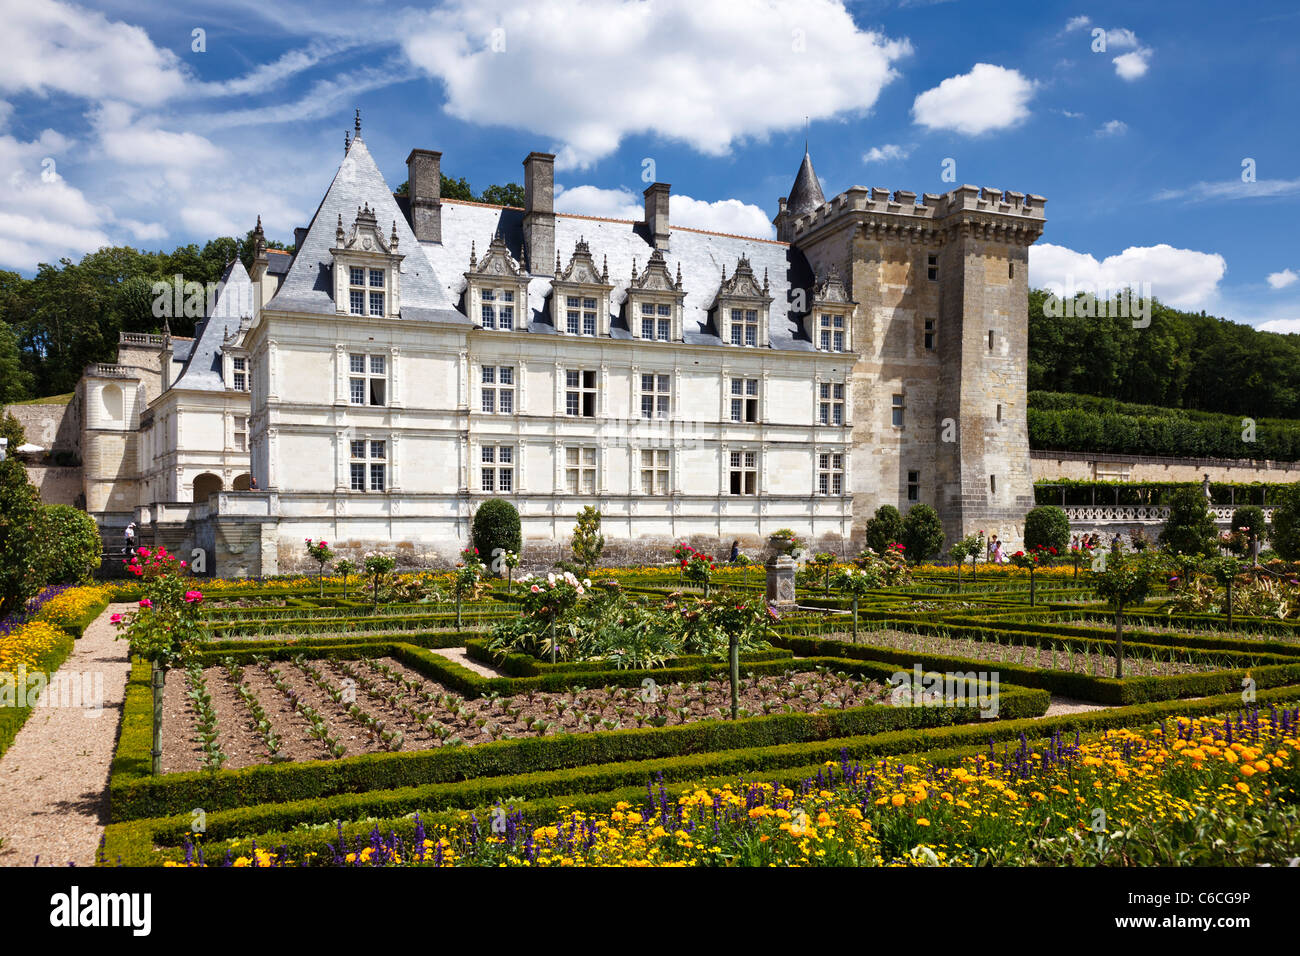 Chateau Villandry castle stately home in Indre et Loire, France, Europe - Stock Image